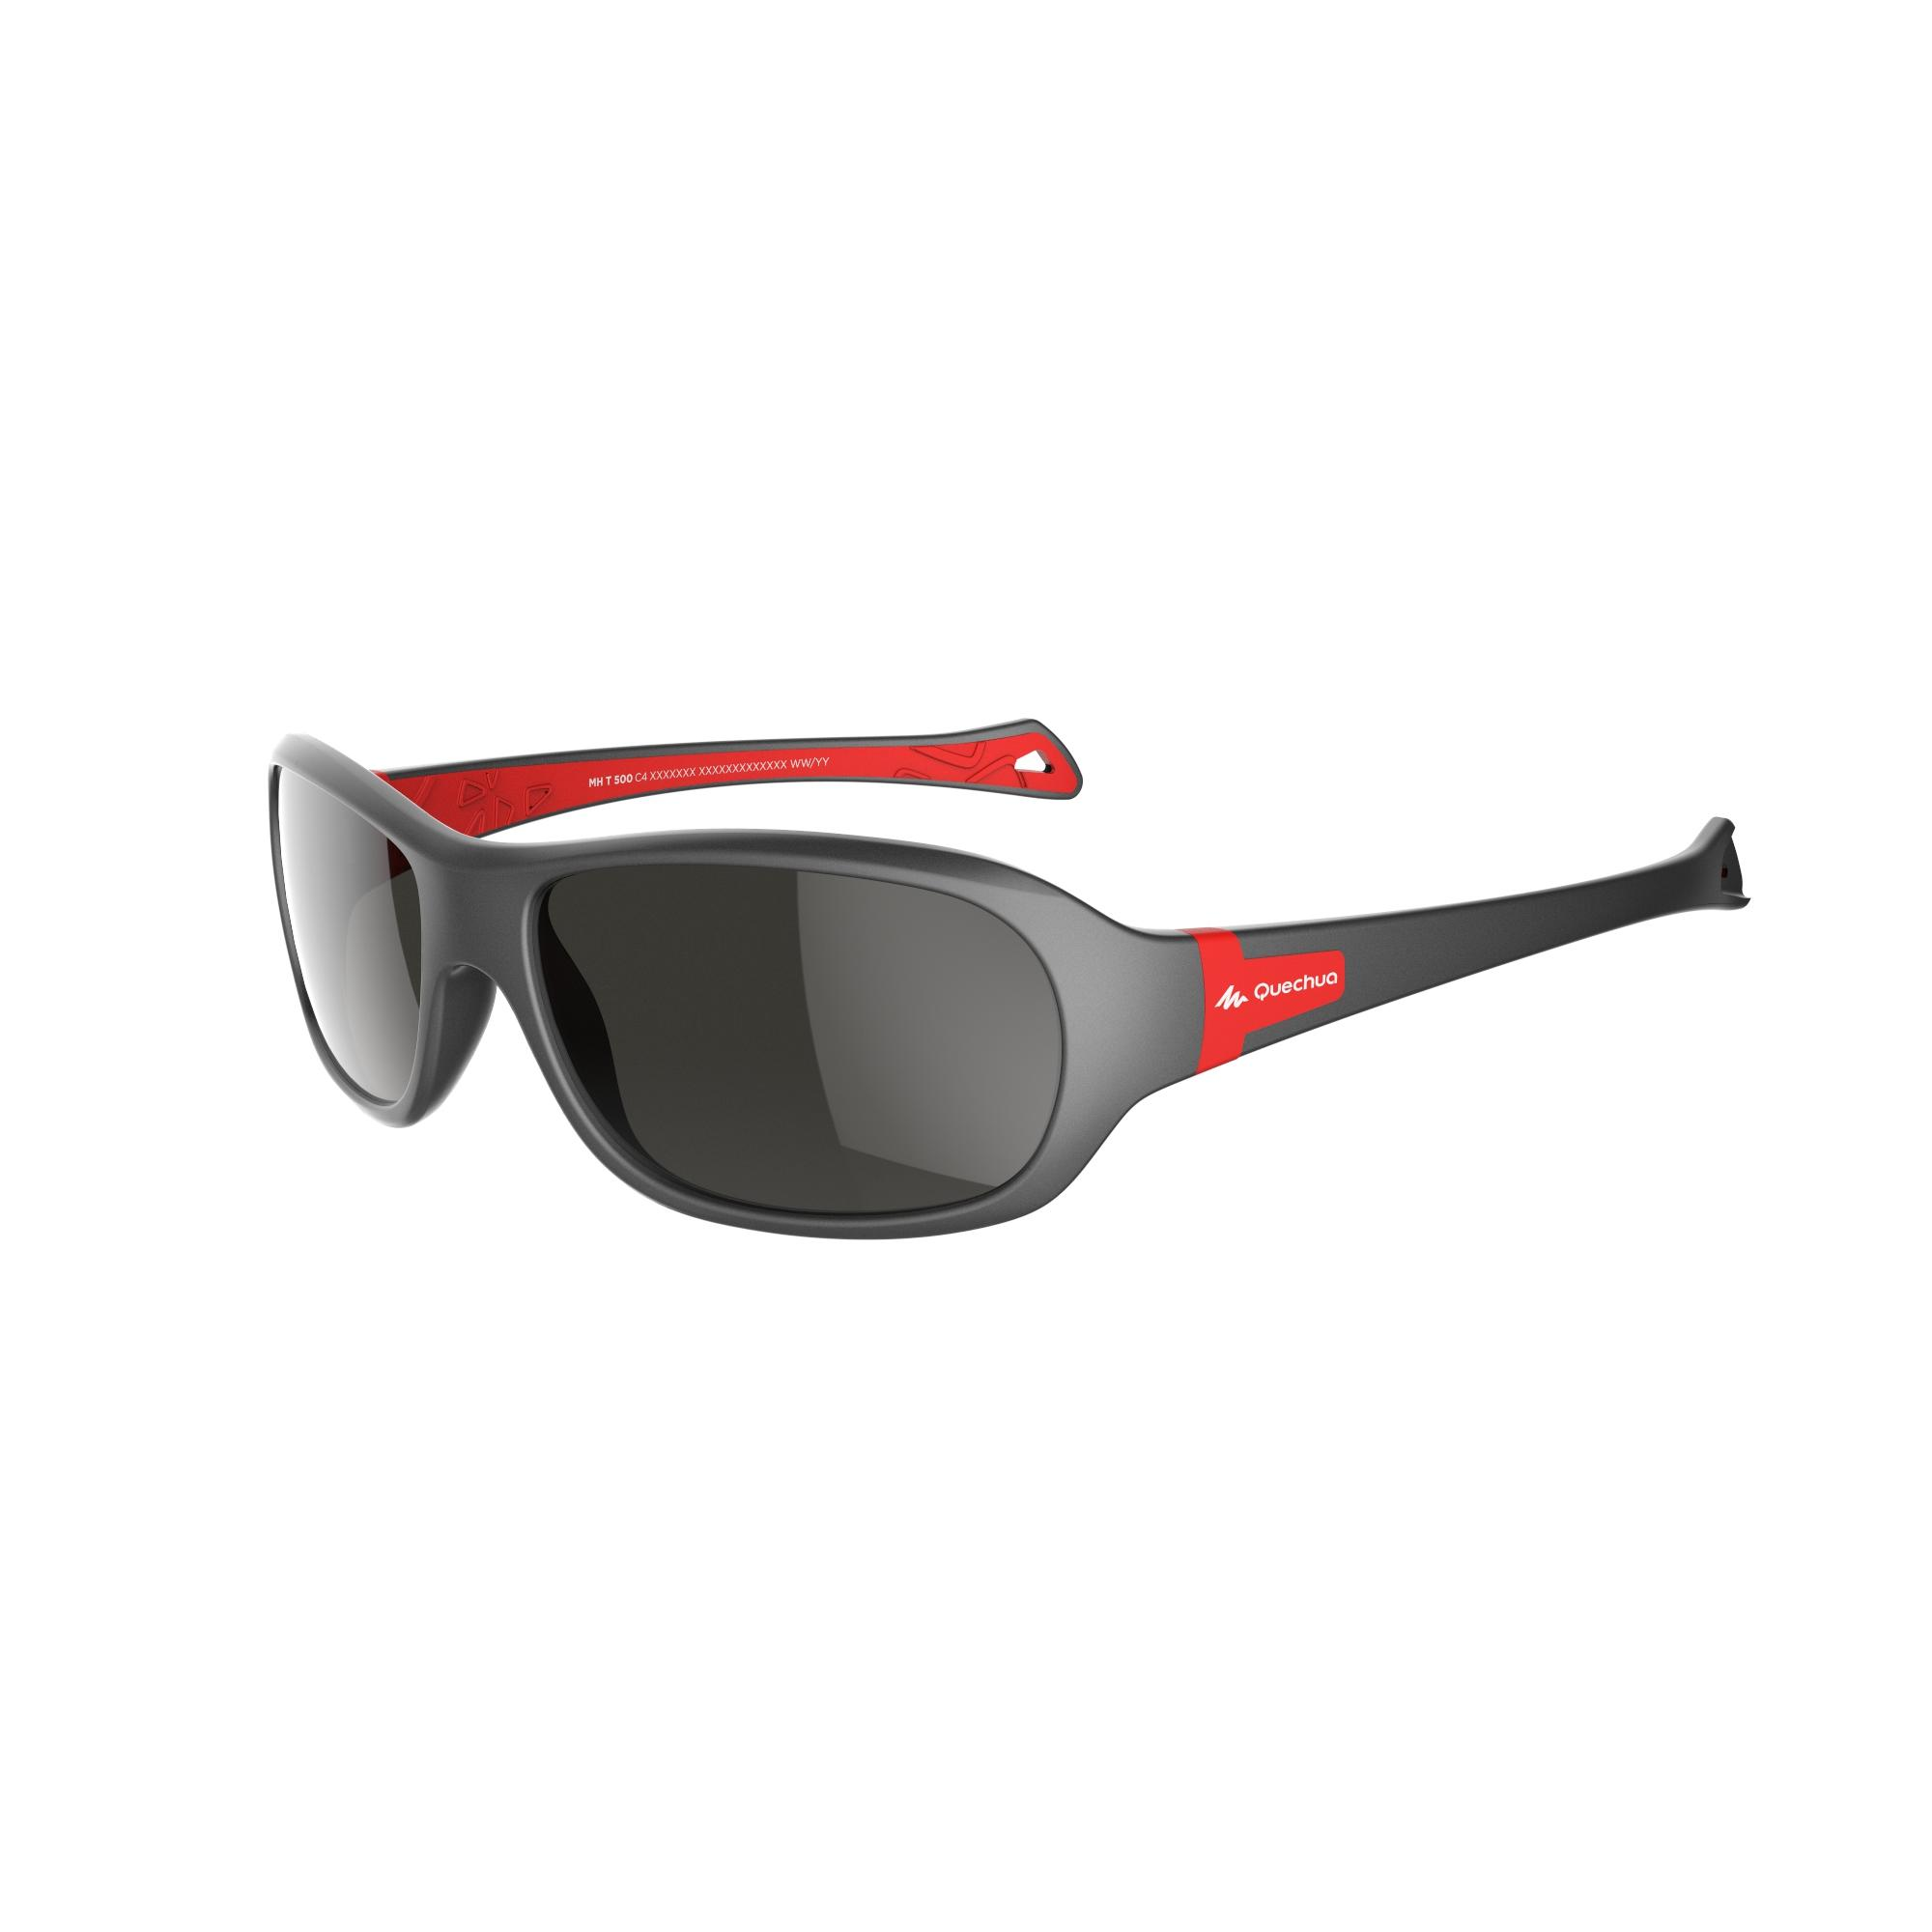 MH T 500 Children Hiking Sunglasses Ages 7-10 Category 4 - Grey